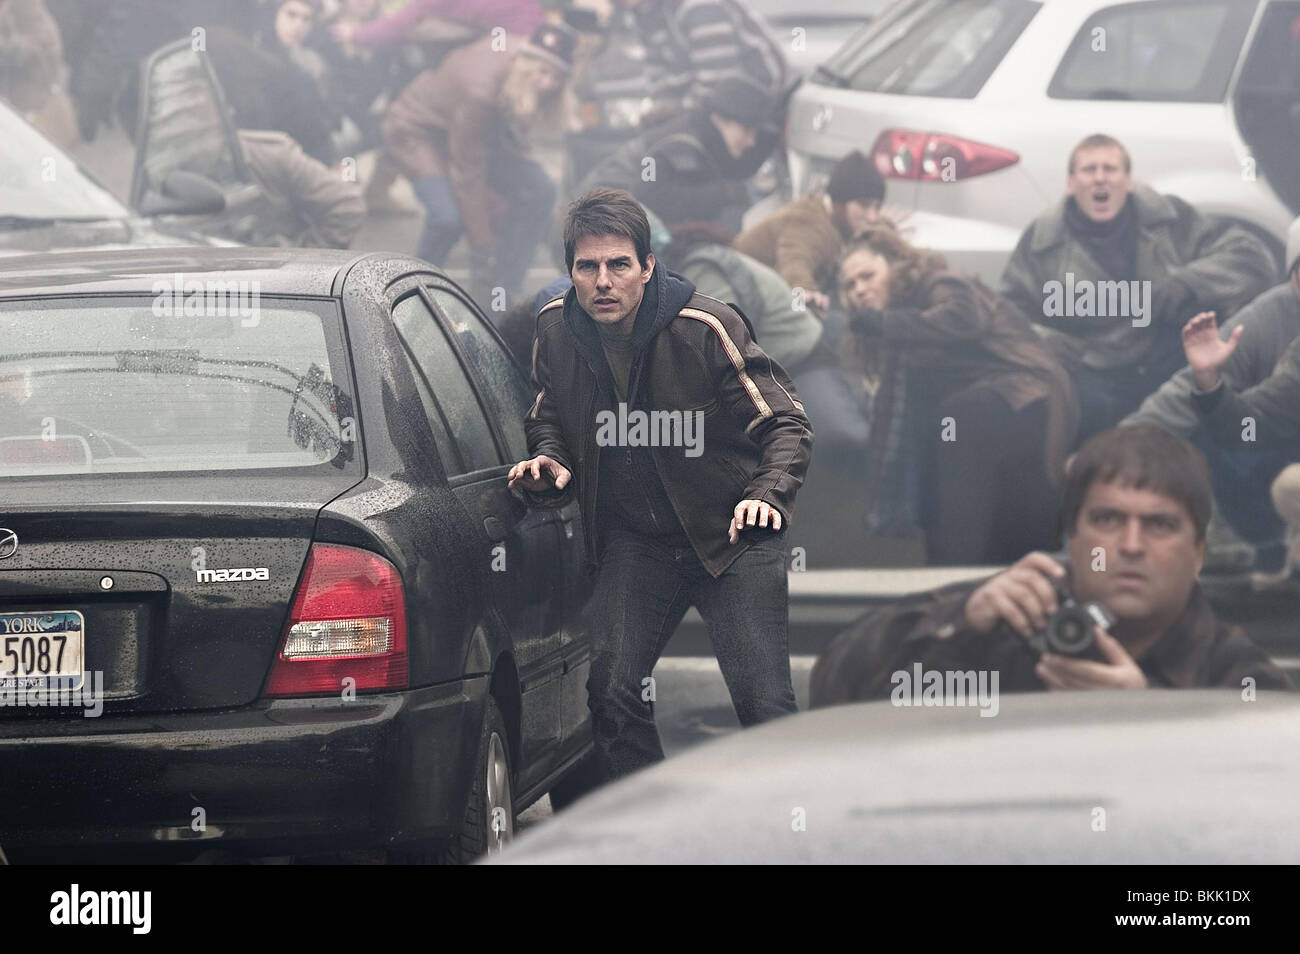 WAR OF THE WORLDS (2005) TOM CRUISE WARW 001-01 - Stock Image